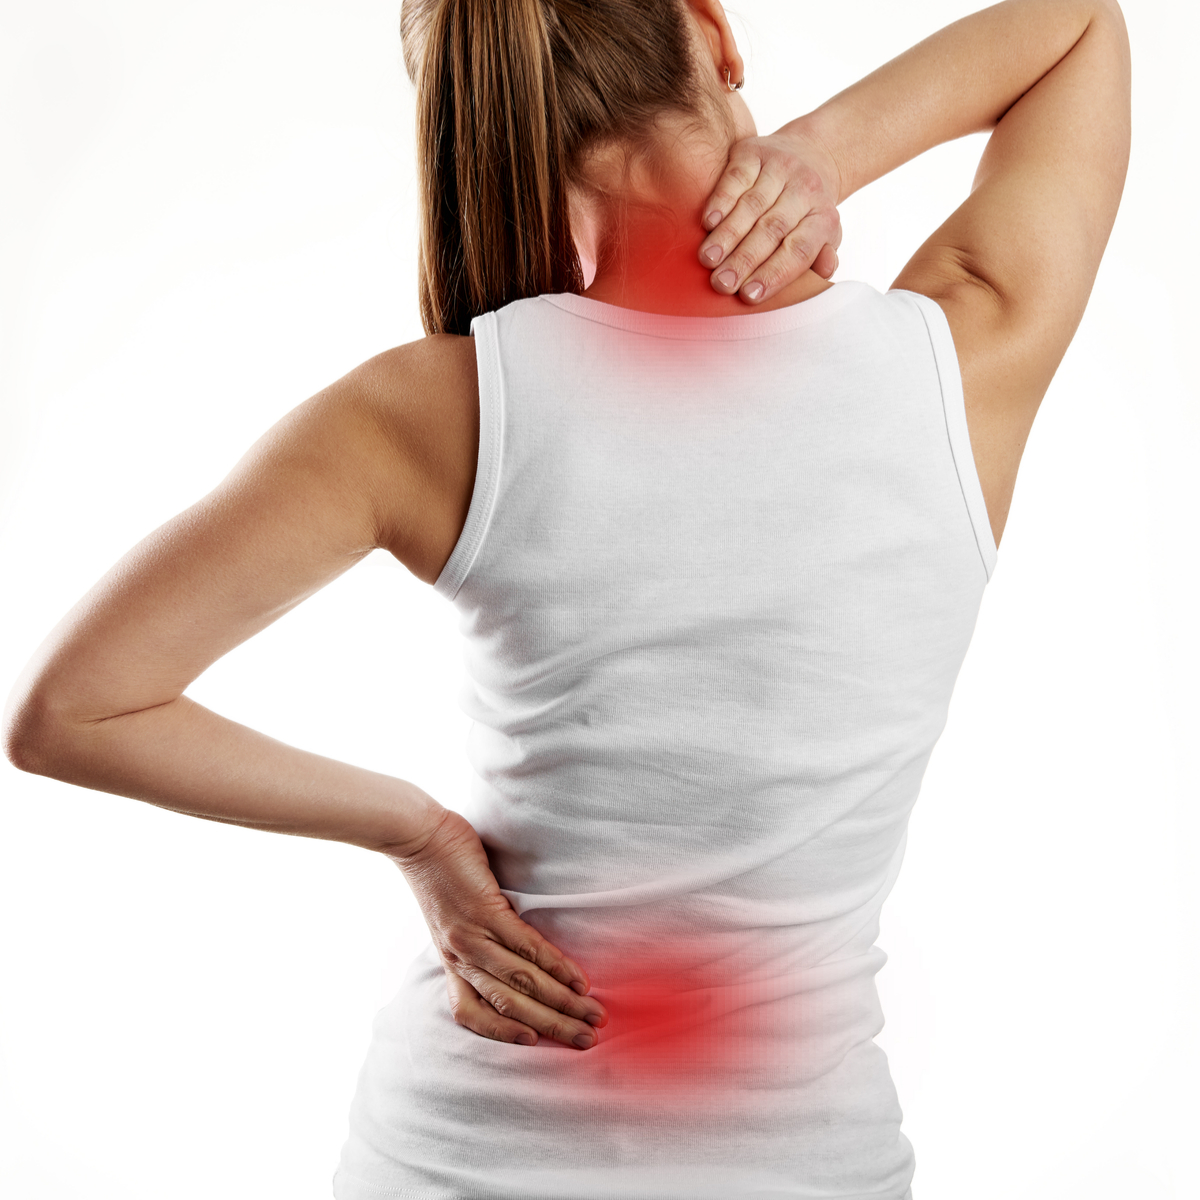 Adult Scoliosis Spine Care Nj North Jersey Spine Group